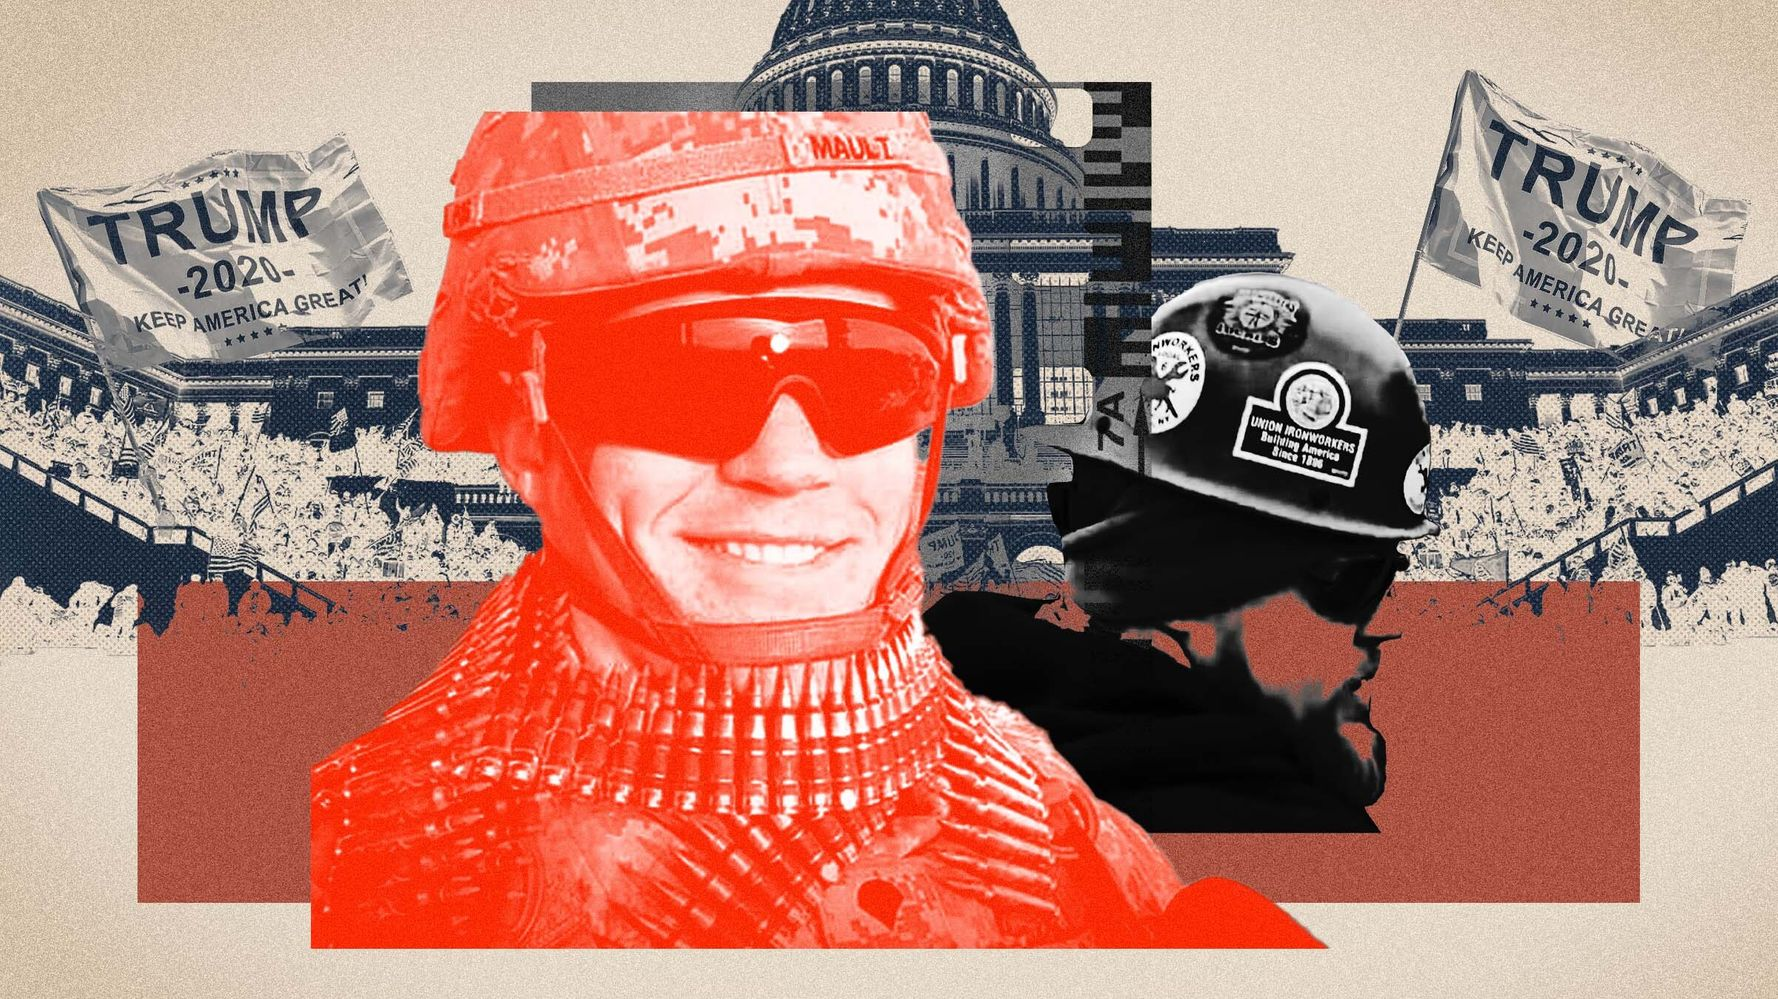 He Attacked Cops At The Capitol. The FBI Interviewed Him. Then He Rejoined The Army.